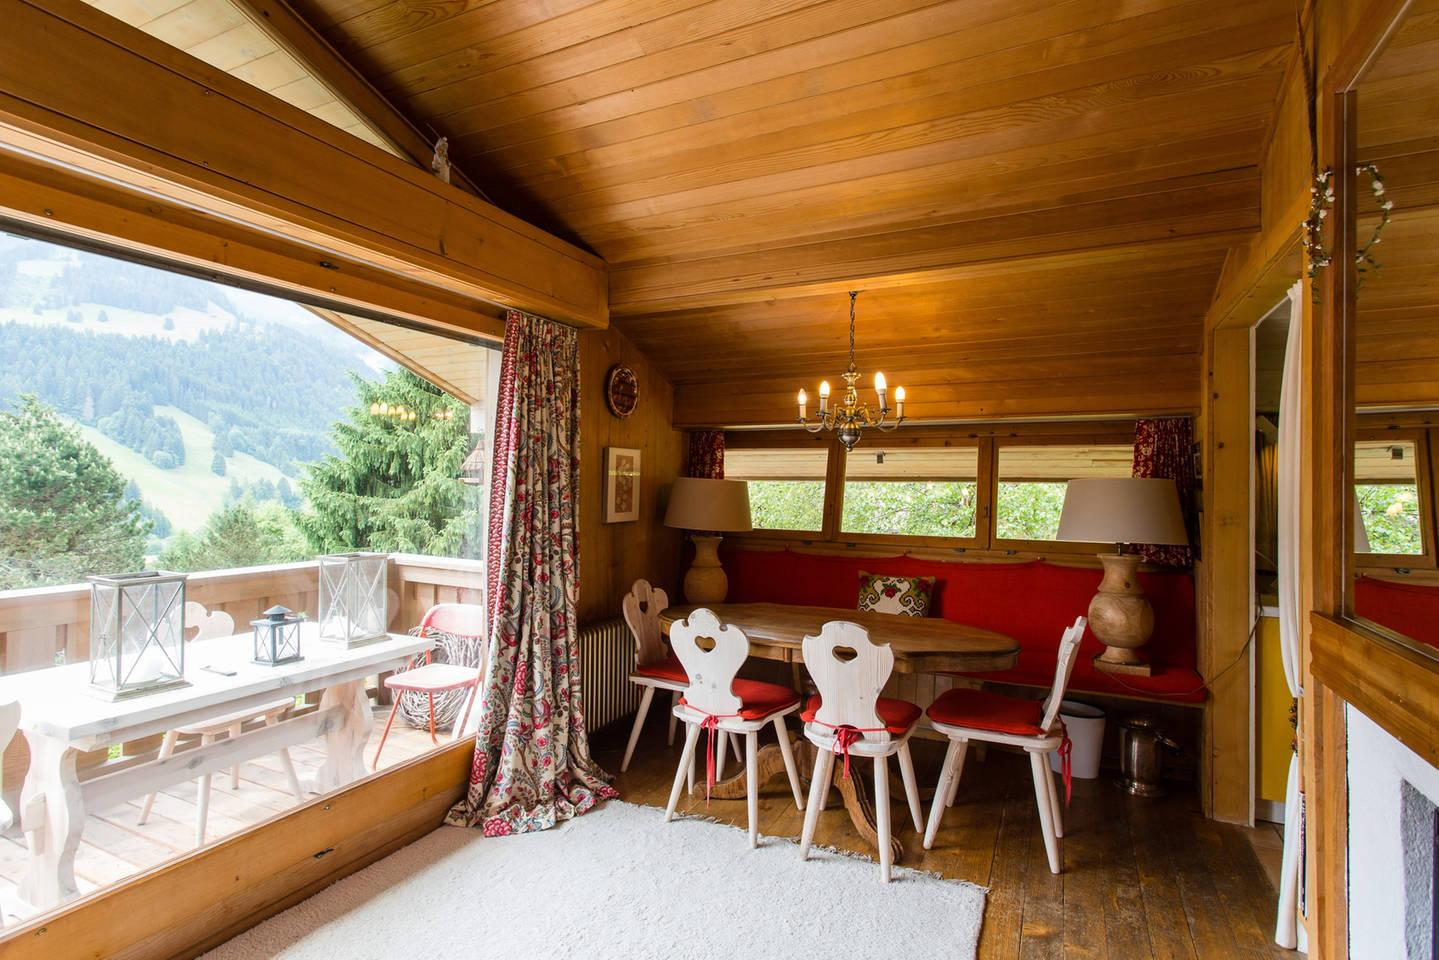 Beautiful Sunshine Chalet designed with Love and Care